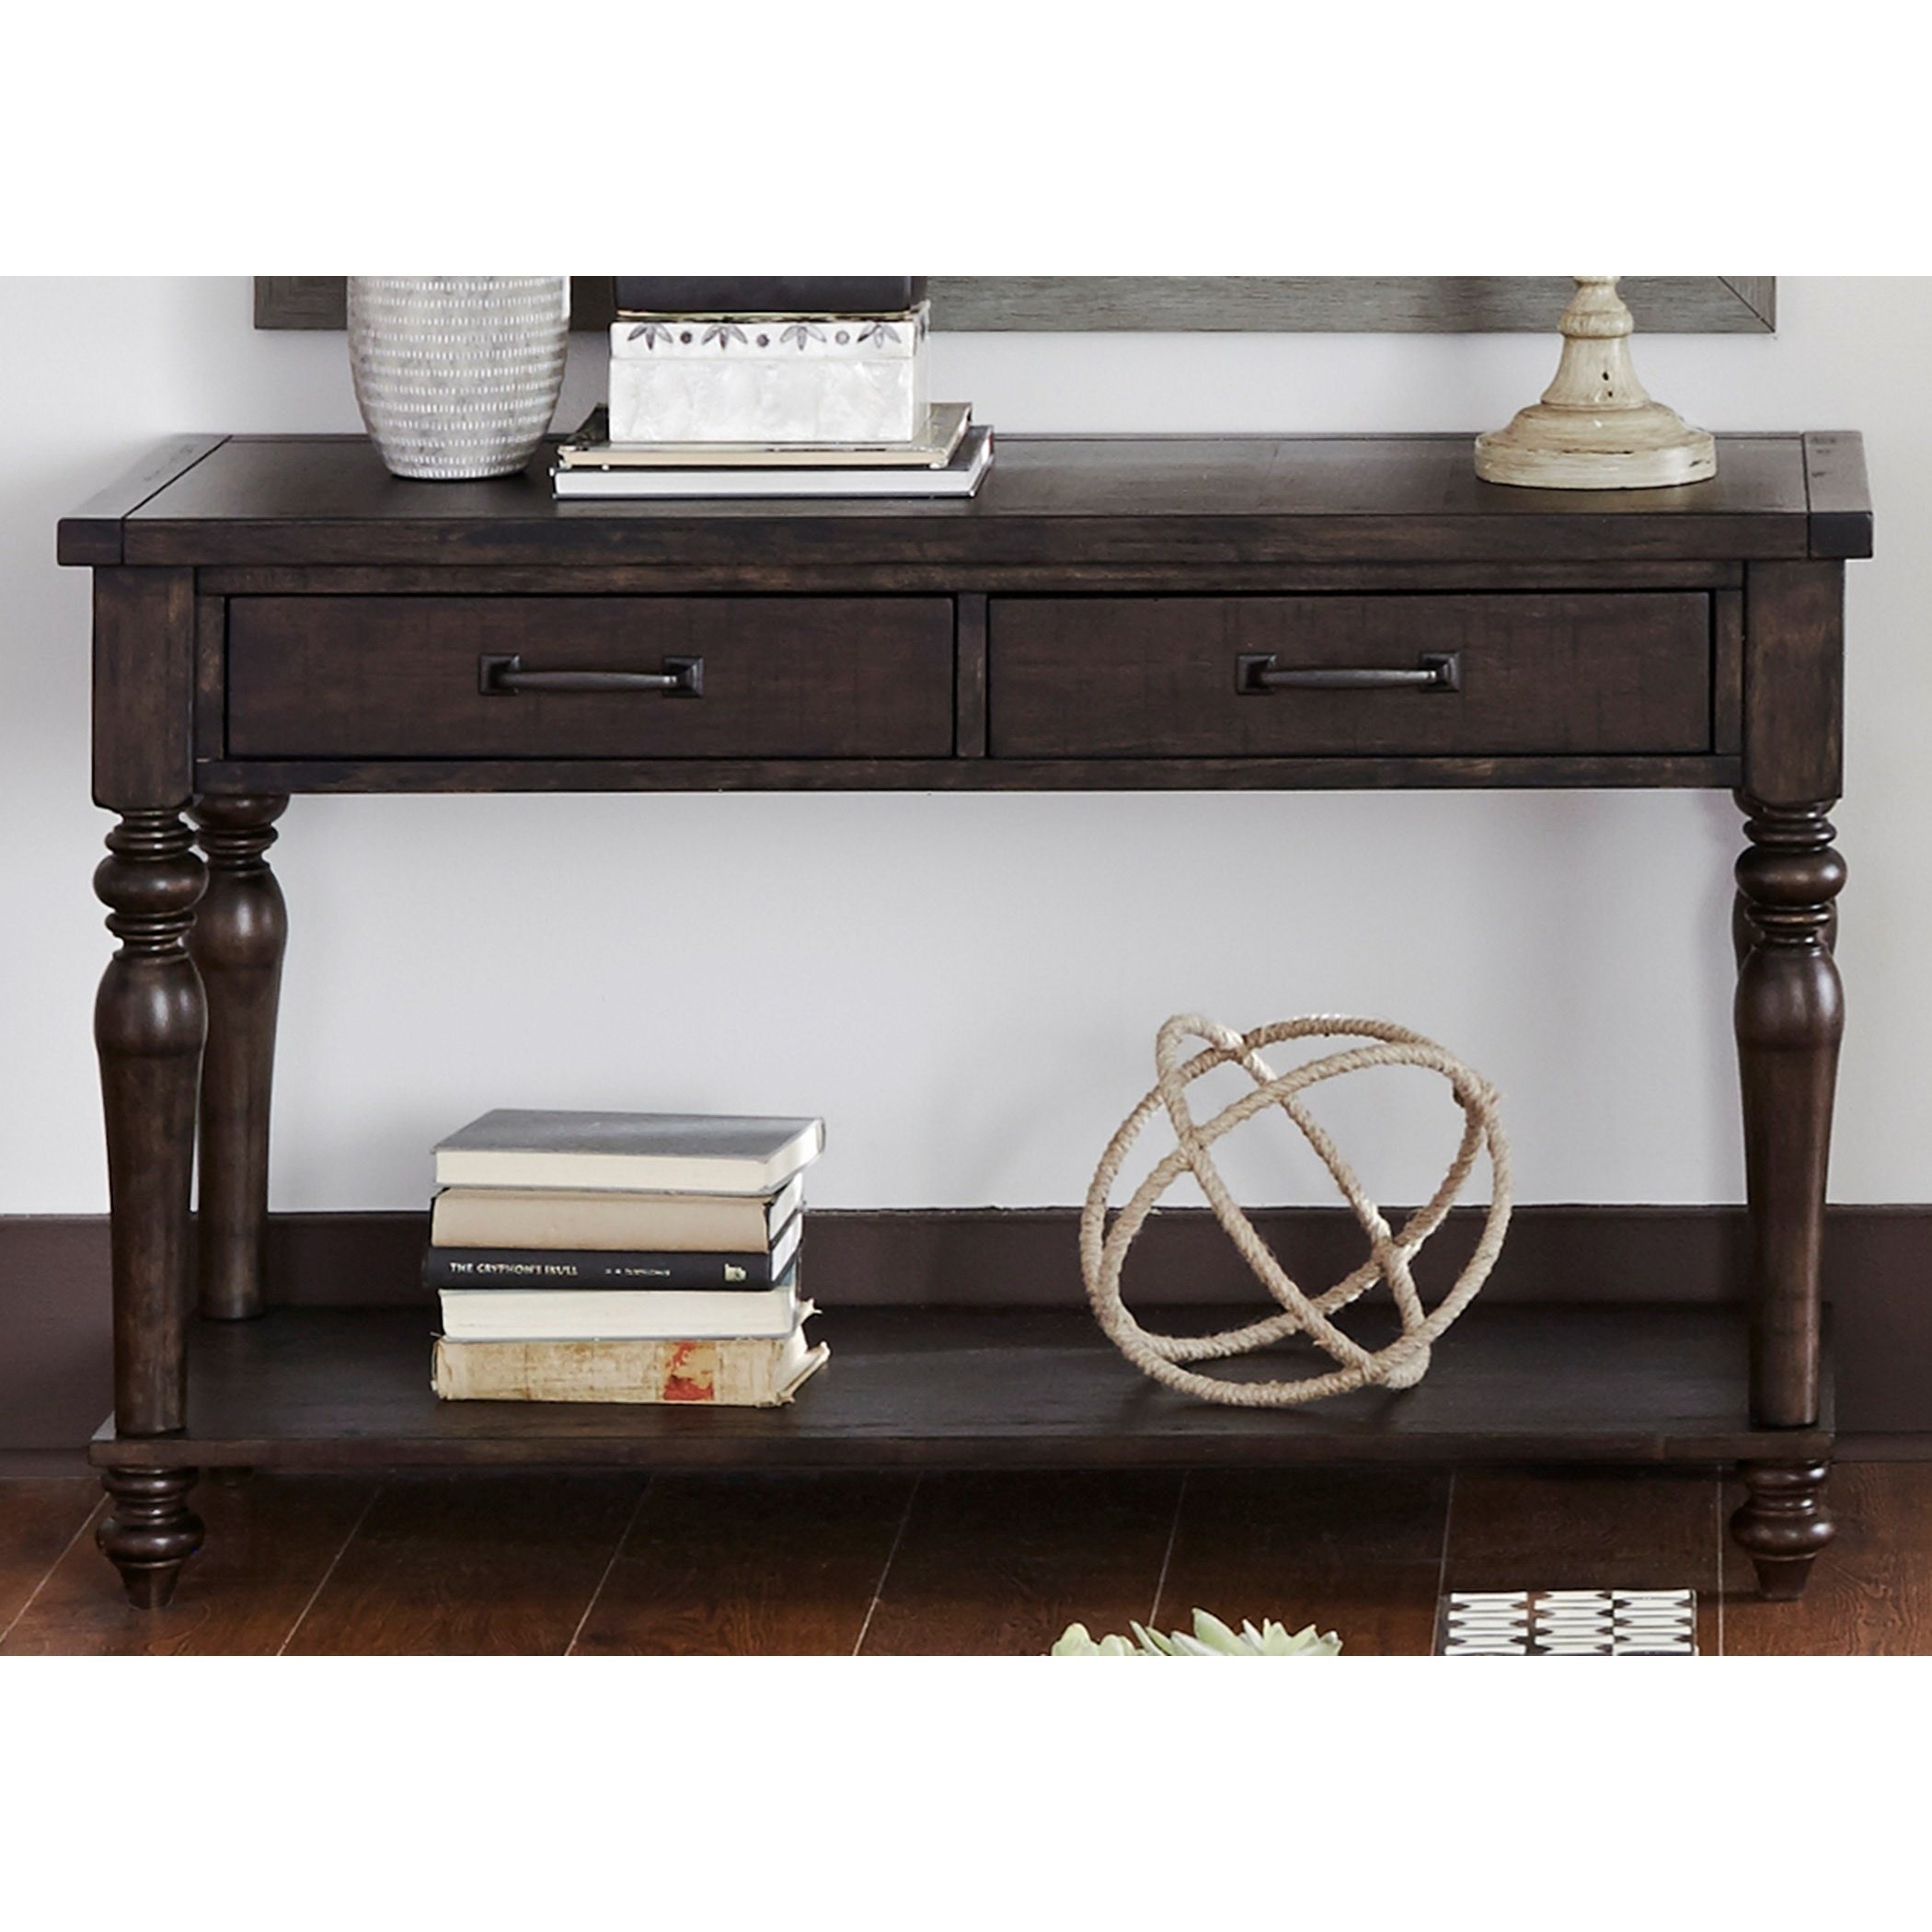 Liberty Furniture Catawba Hills Occassional Sofa Table - Item Number: 816-OT1030